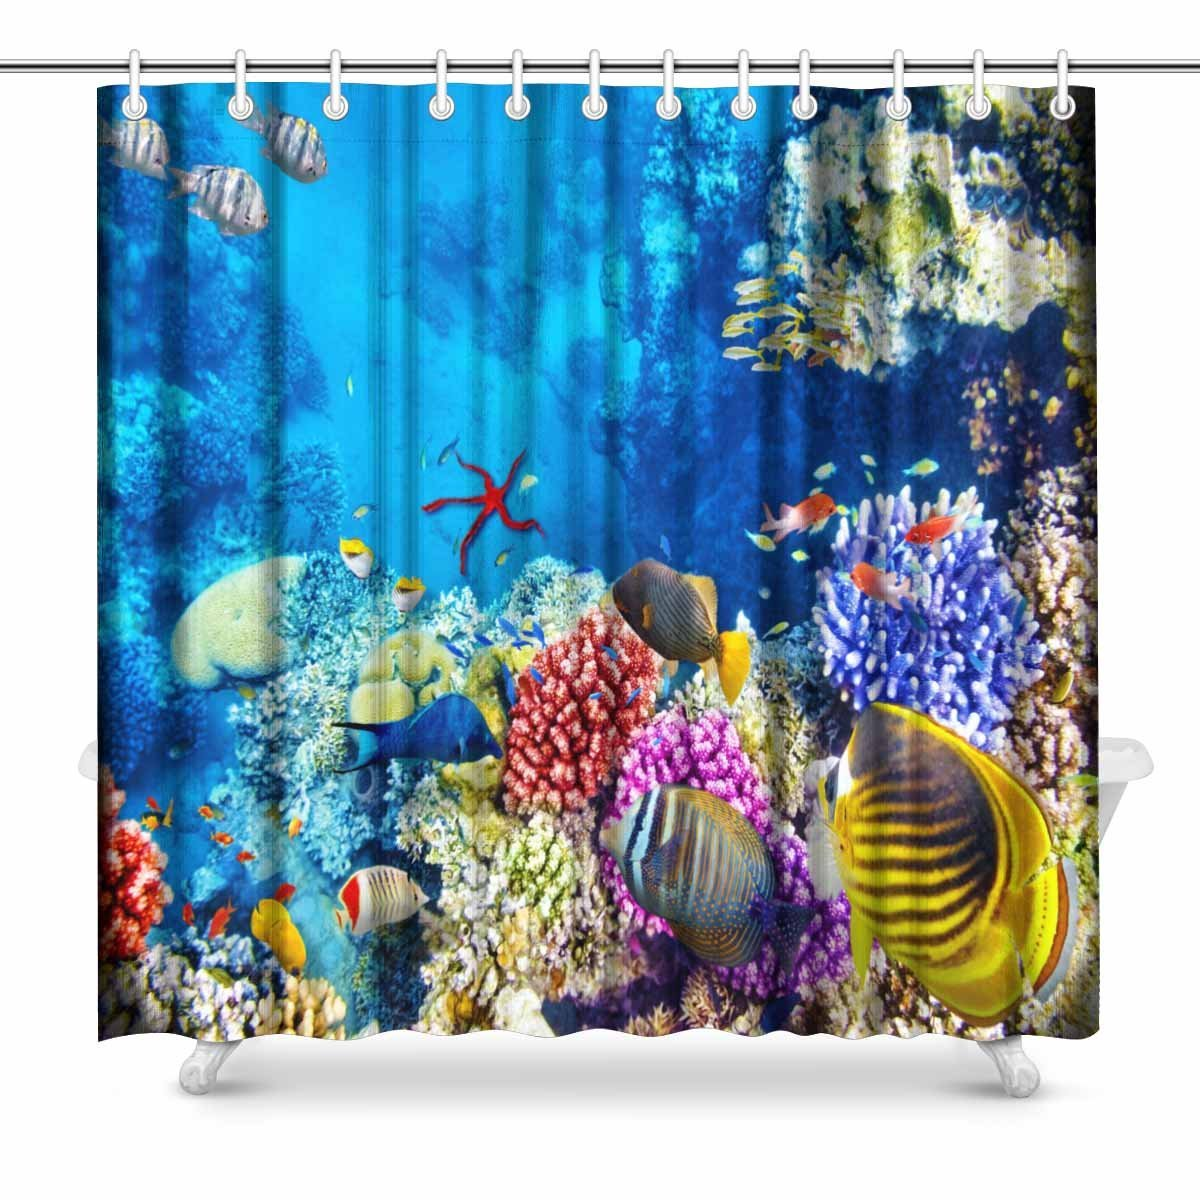 Us 11 7 64 Off Aplysia Wonderful And Beautiful Underwater World With Corals And Tropical Fish Fabric Bathroom Decor Shower Curtains In Shower